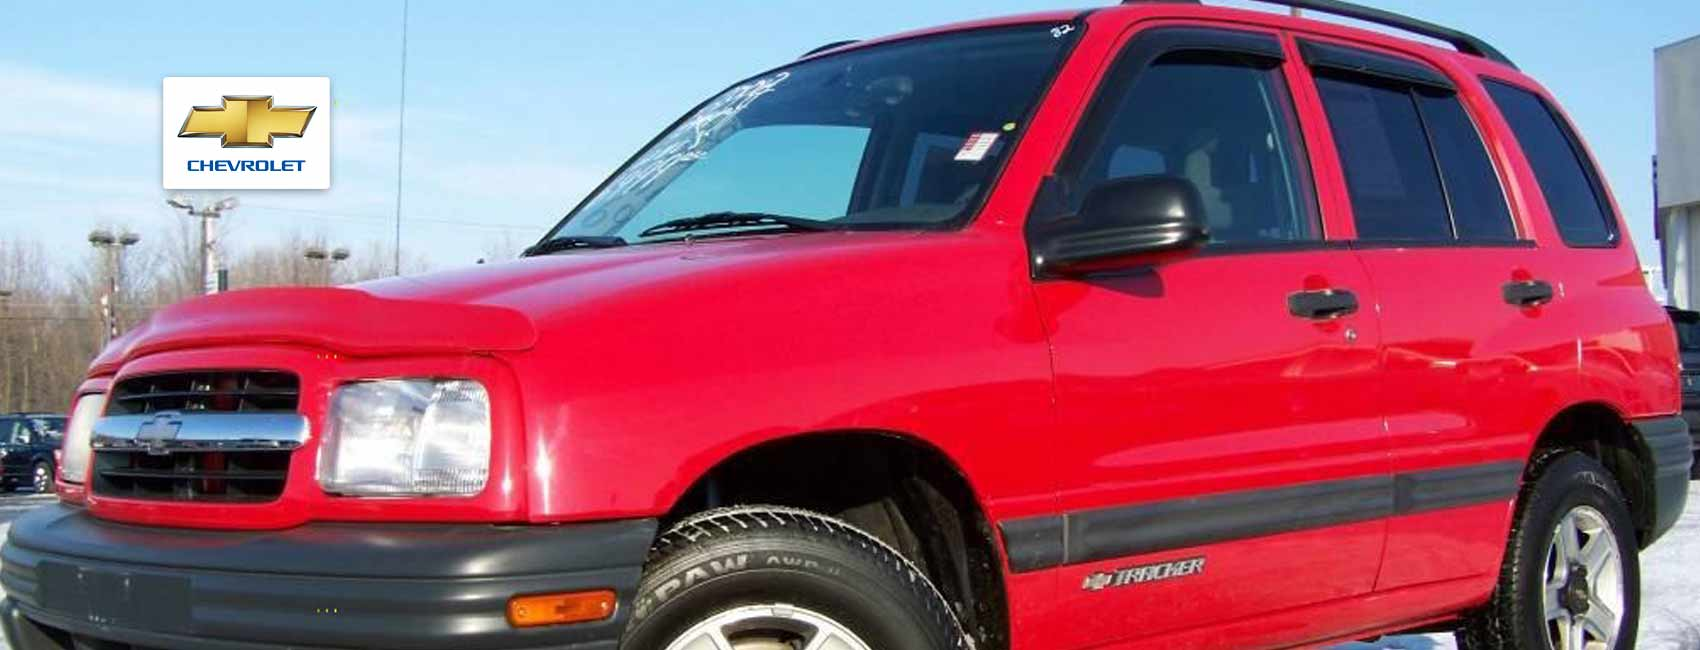 chevy tracker parts buy used chevy tracker parts online best price chevy tracker parts buy used chevy